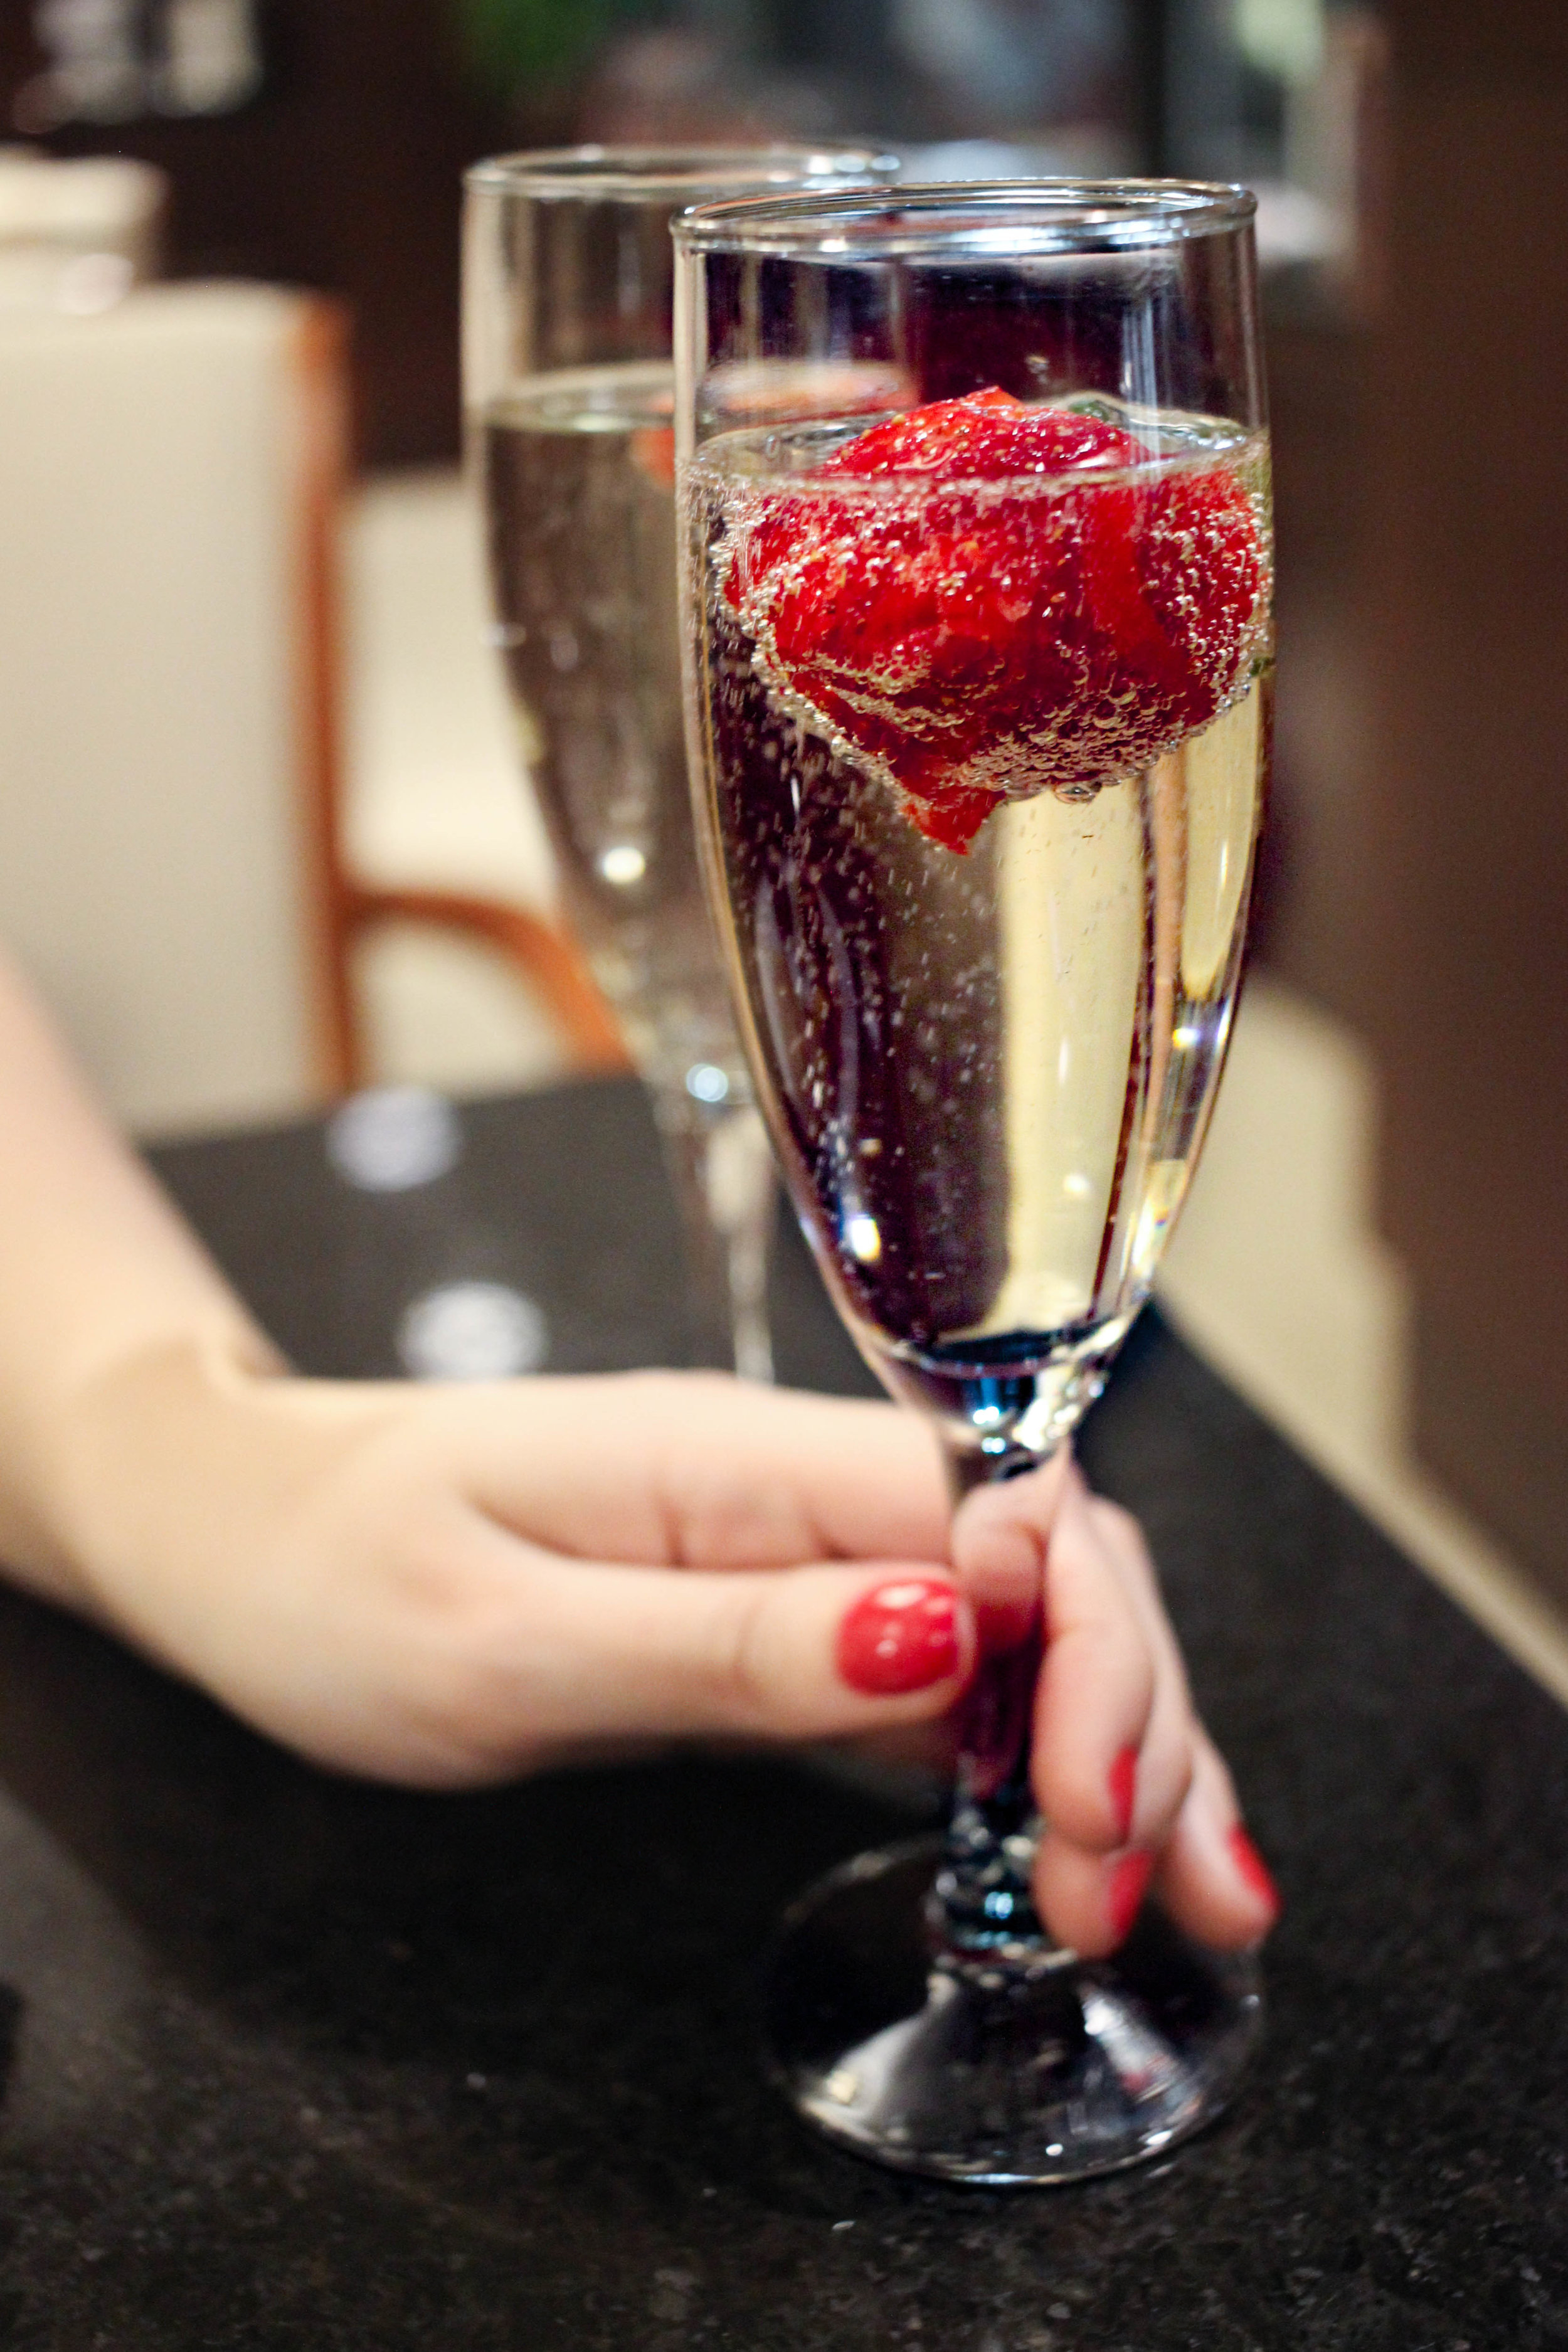 A glass of Prosecco with strawberry